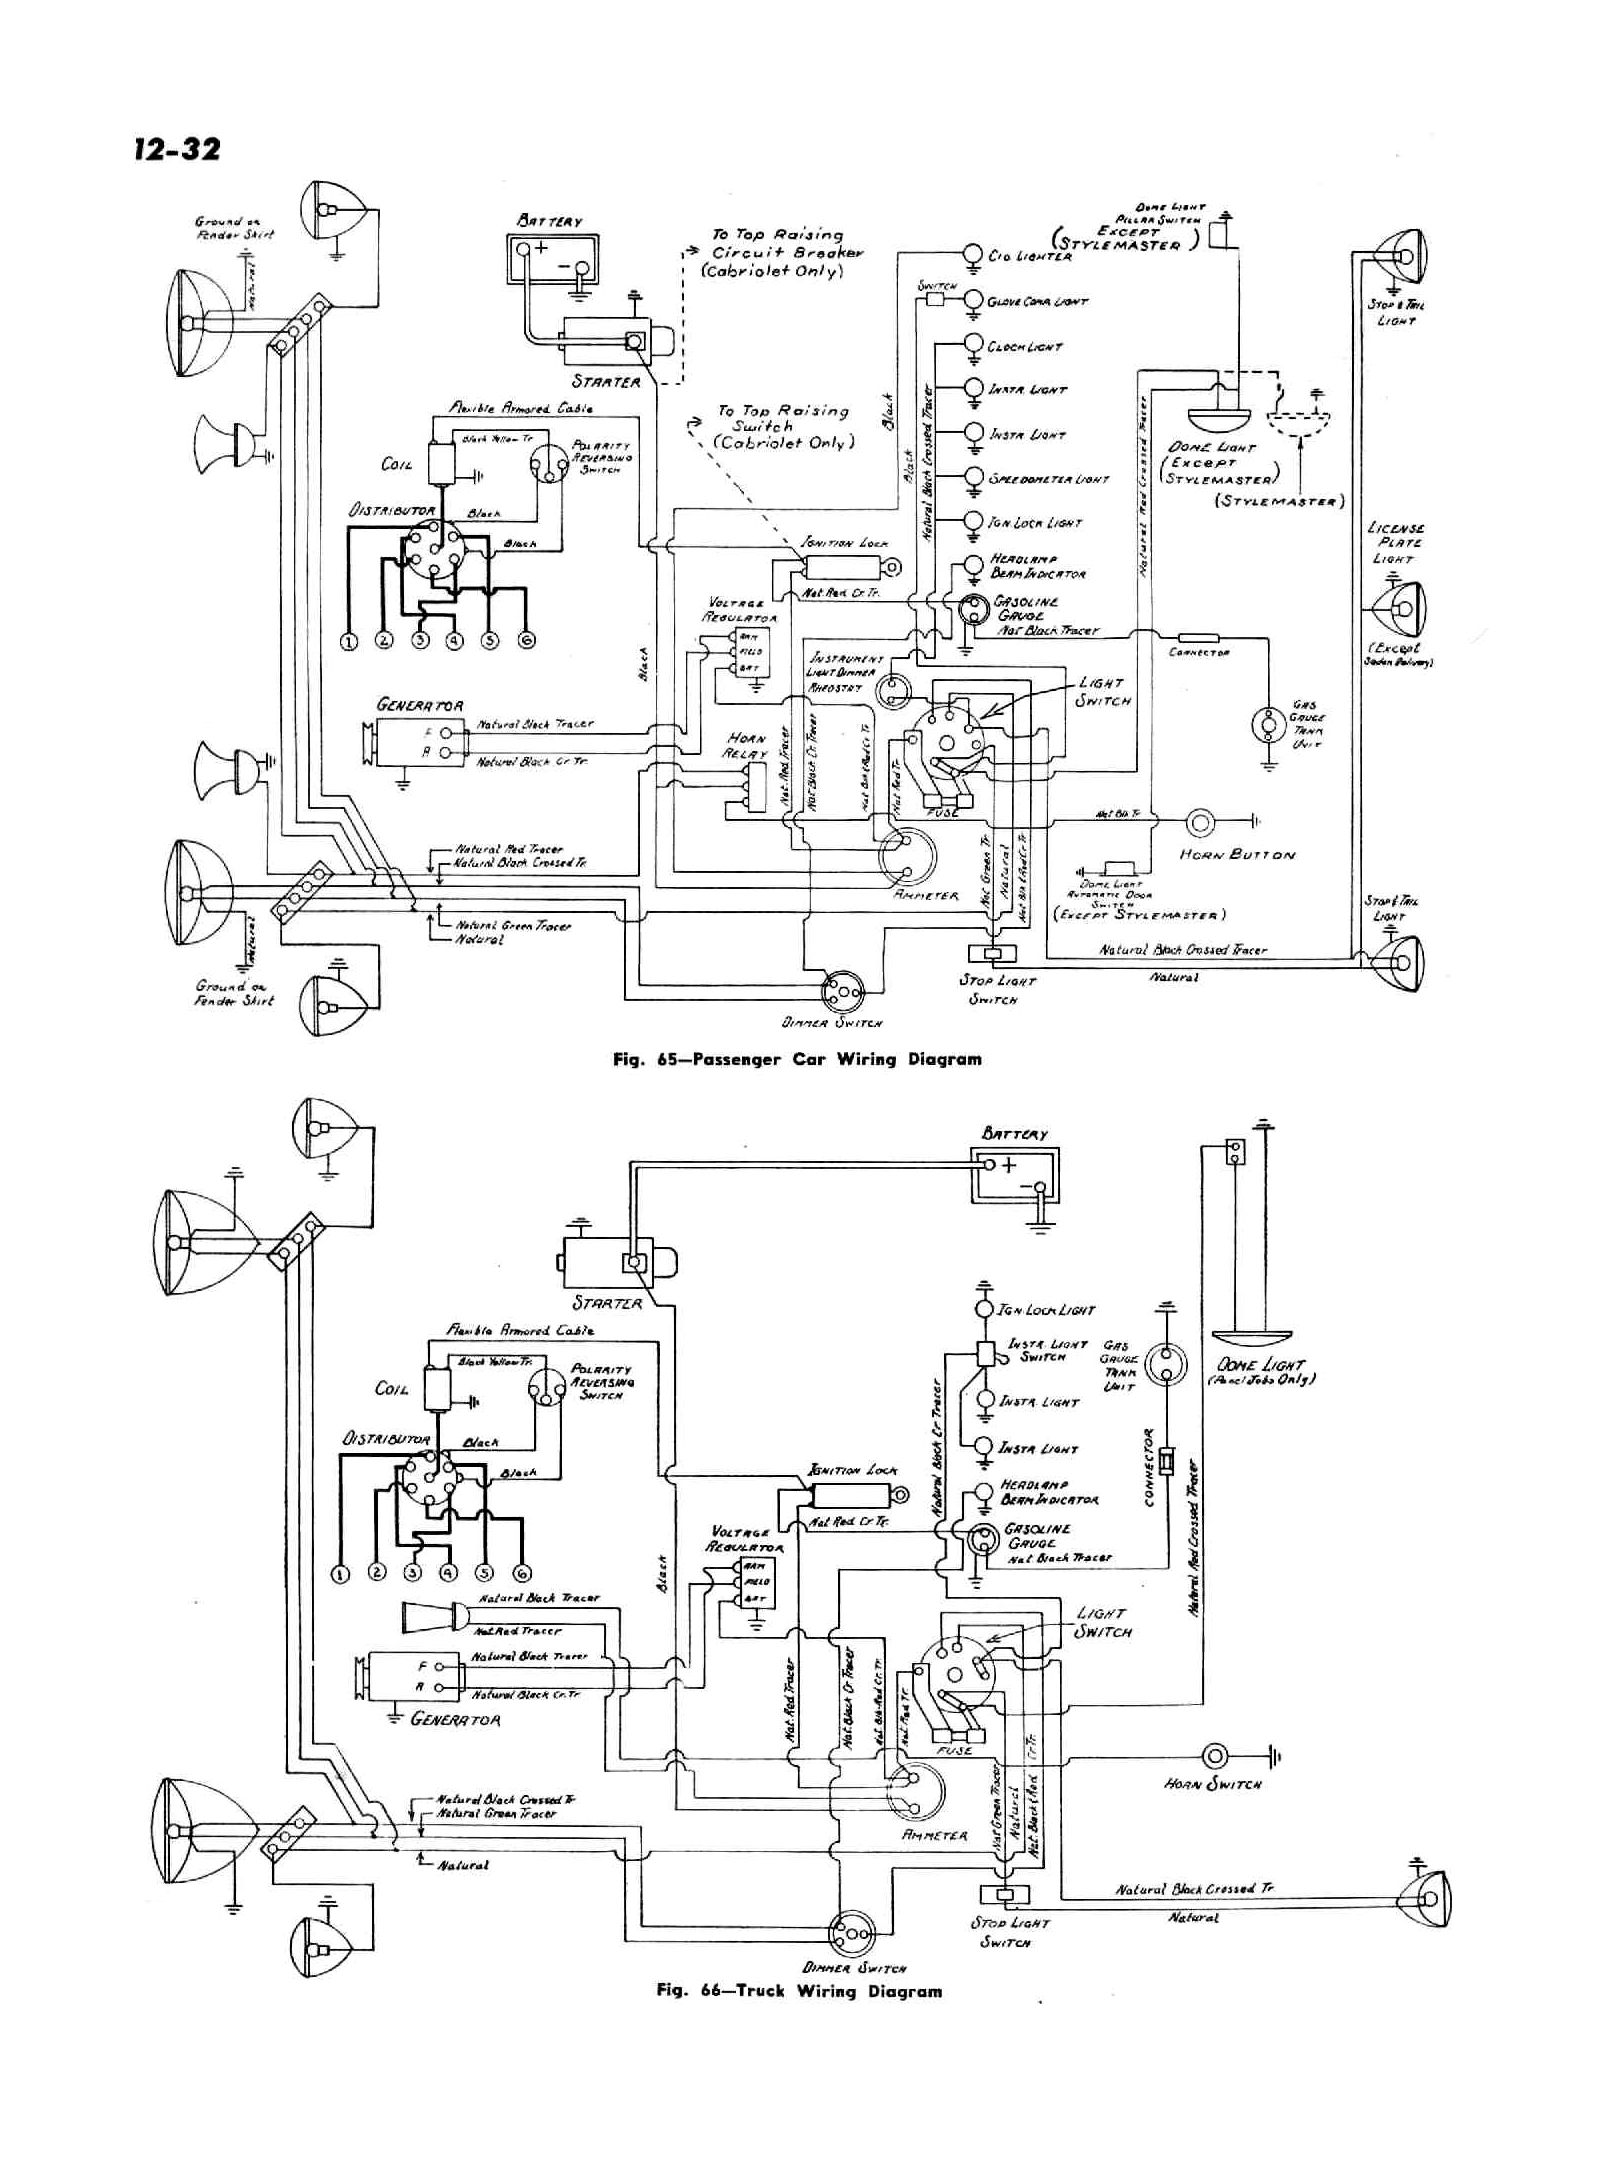 1977 dodge pick up wiring trusted wiring diagrams u2022 rh sivamuni com